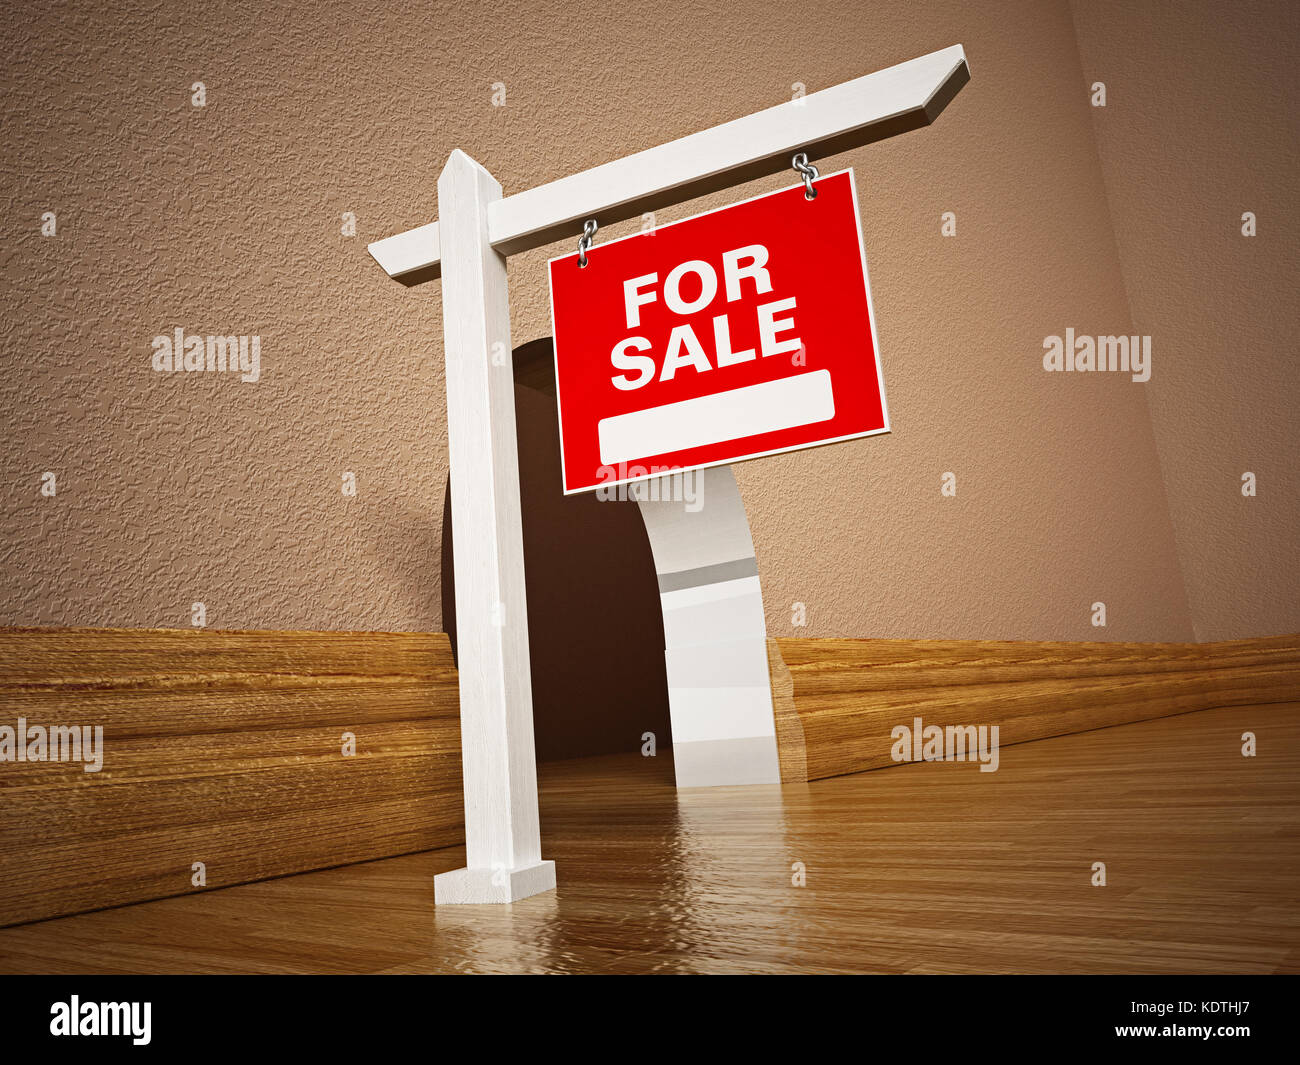 For sale signboard in front of mousehole. 3D illustration. Stock Photo